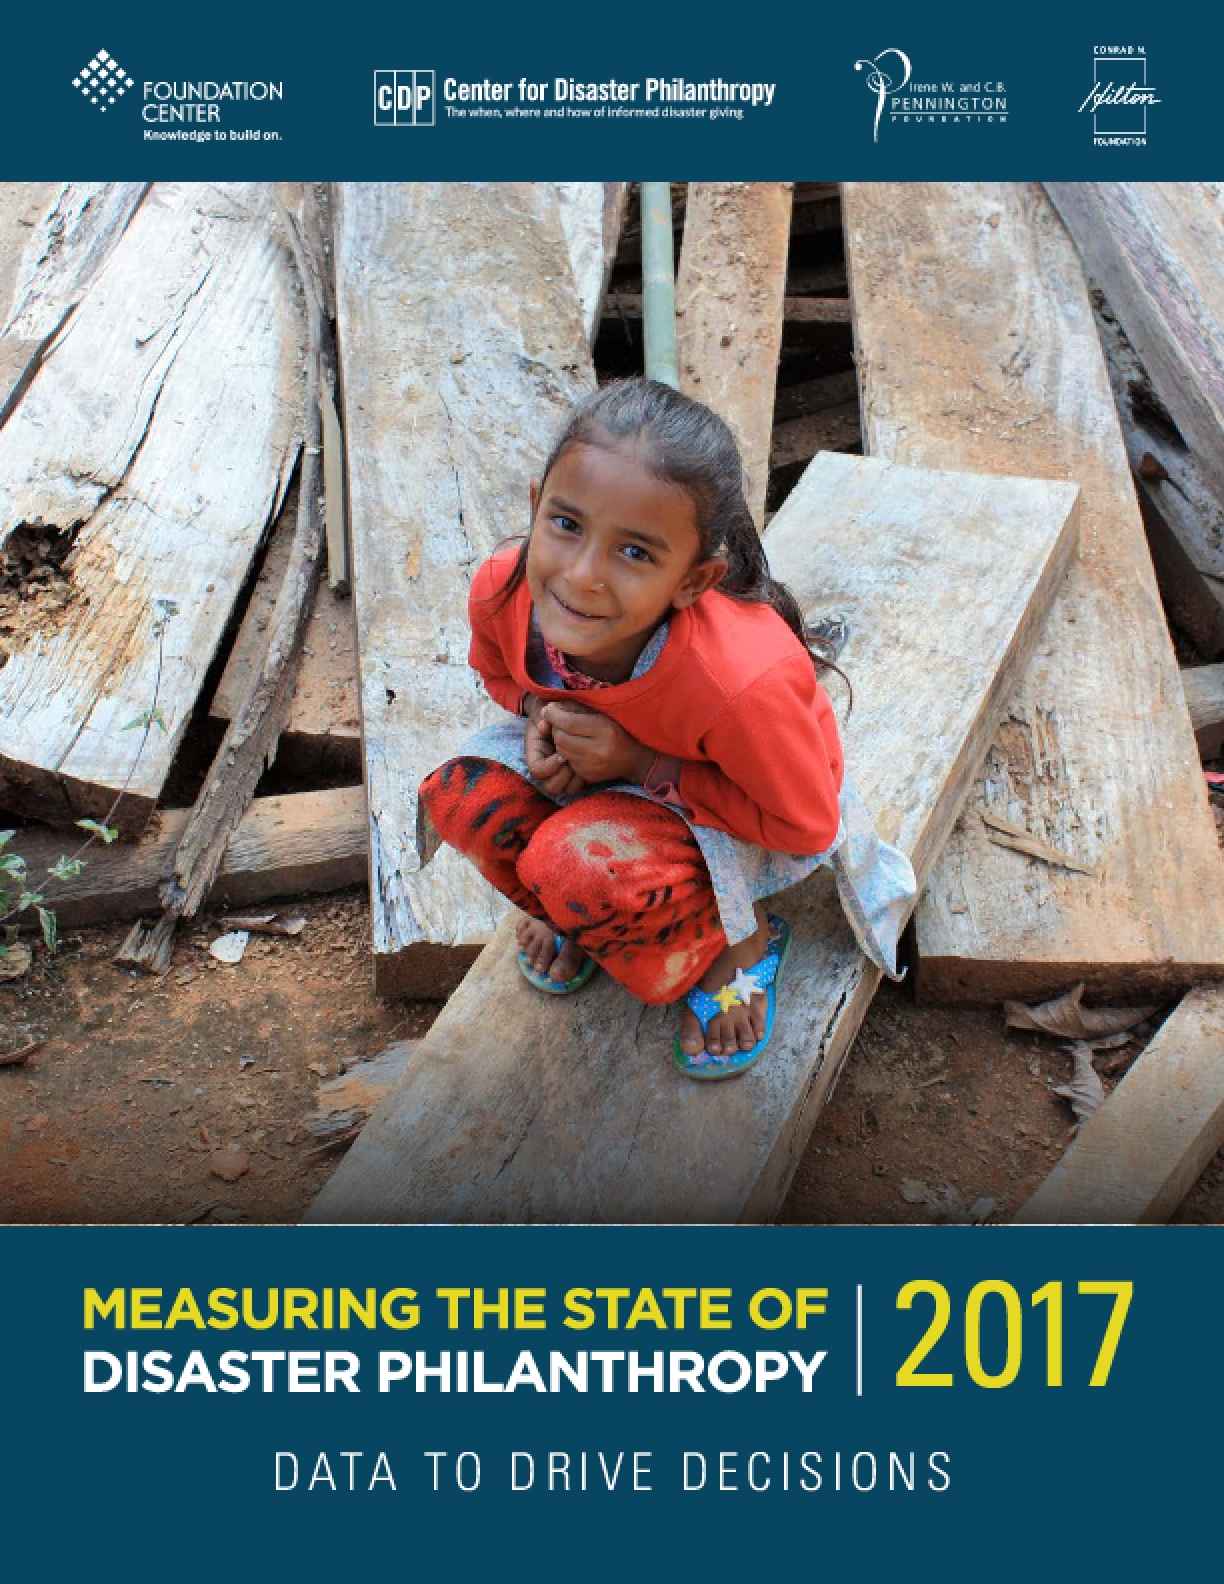 Measuring​ ​the​ ​State​ ​of​ ​Disaster​ ​Philanthropy​ ​2017: Data​ ​to​ ​Drive​ ​Decisions